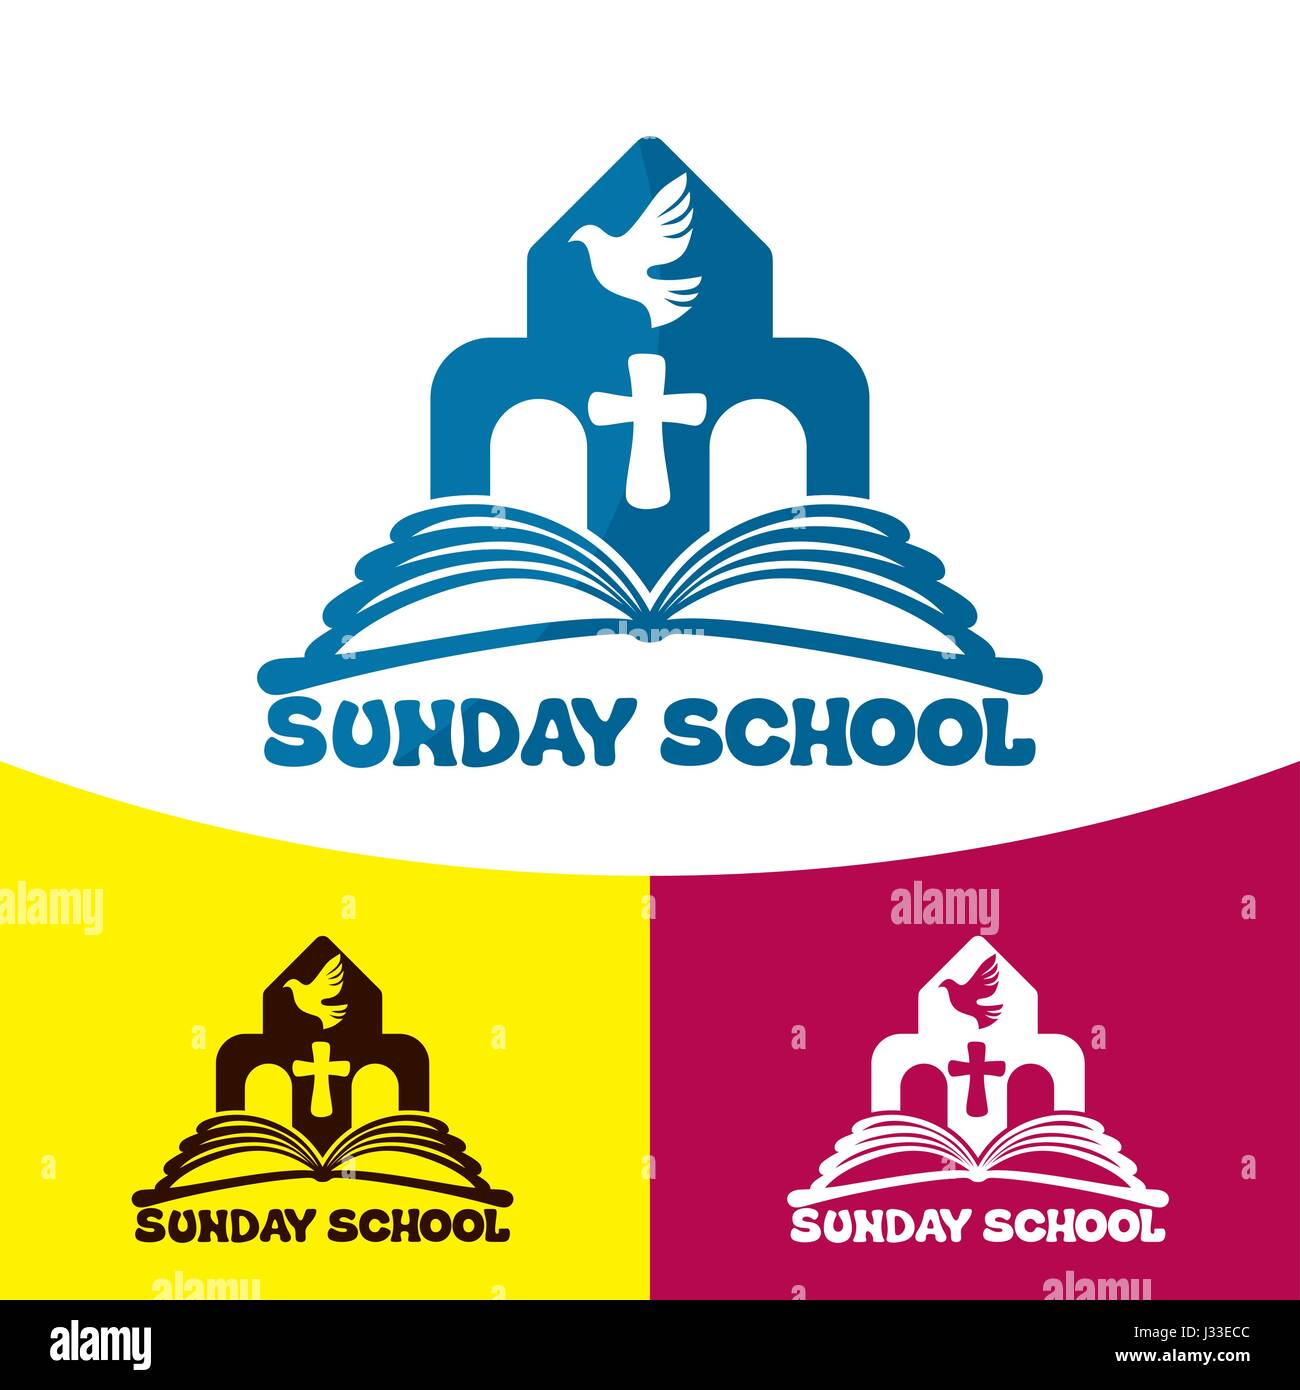 Logo sunday school christian symbols the church of jesus christ logo sunday school christian symbols the church of jesus christ buycottarizona Image collections